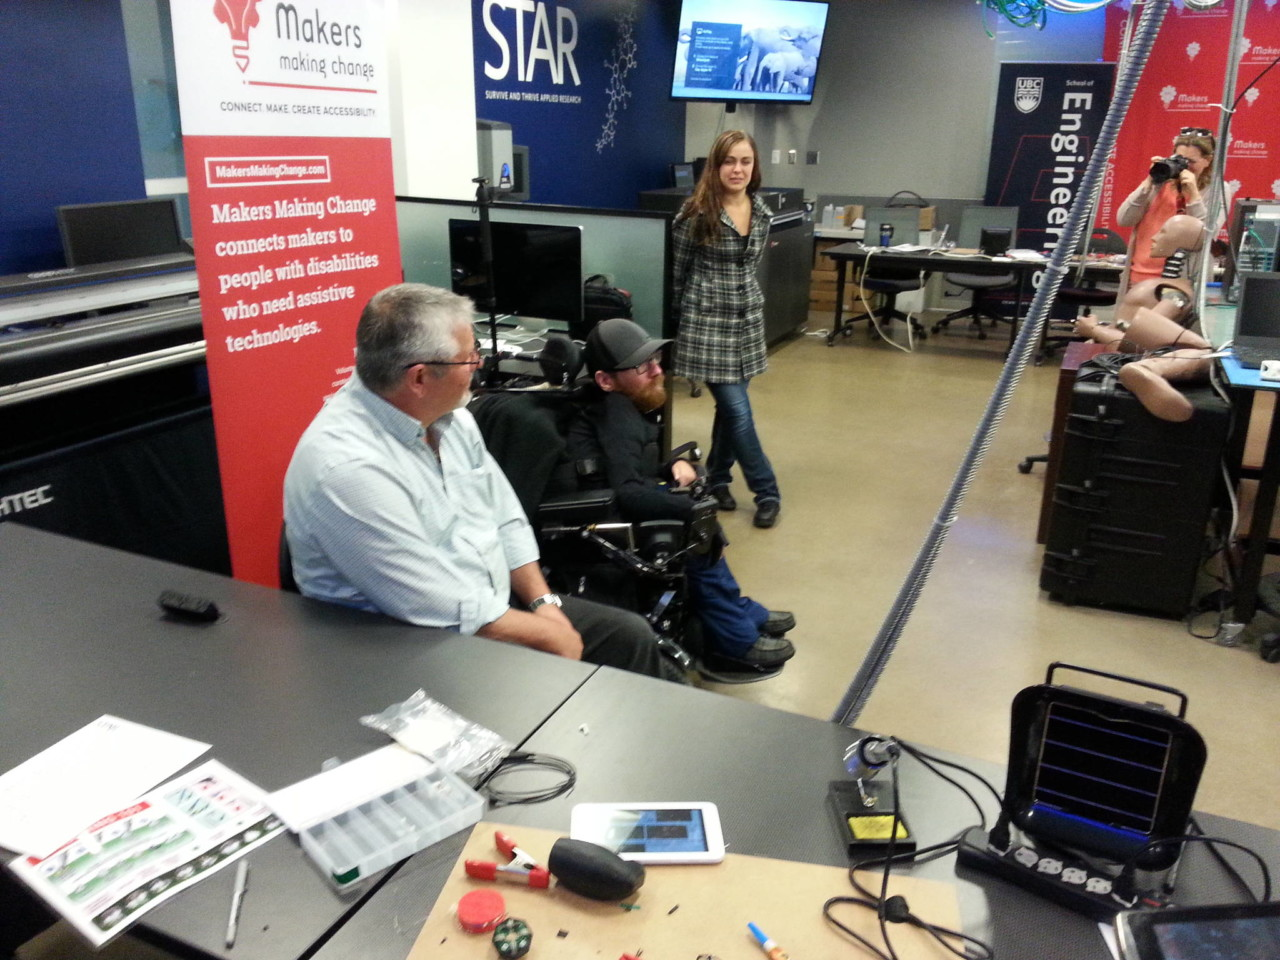 Ean Price in wheelchair shares how accessible technology including the Lipsync empowers people with disabilities